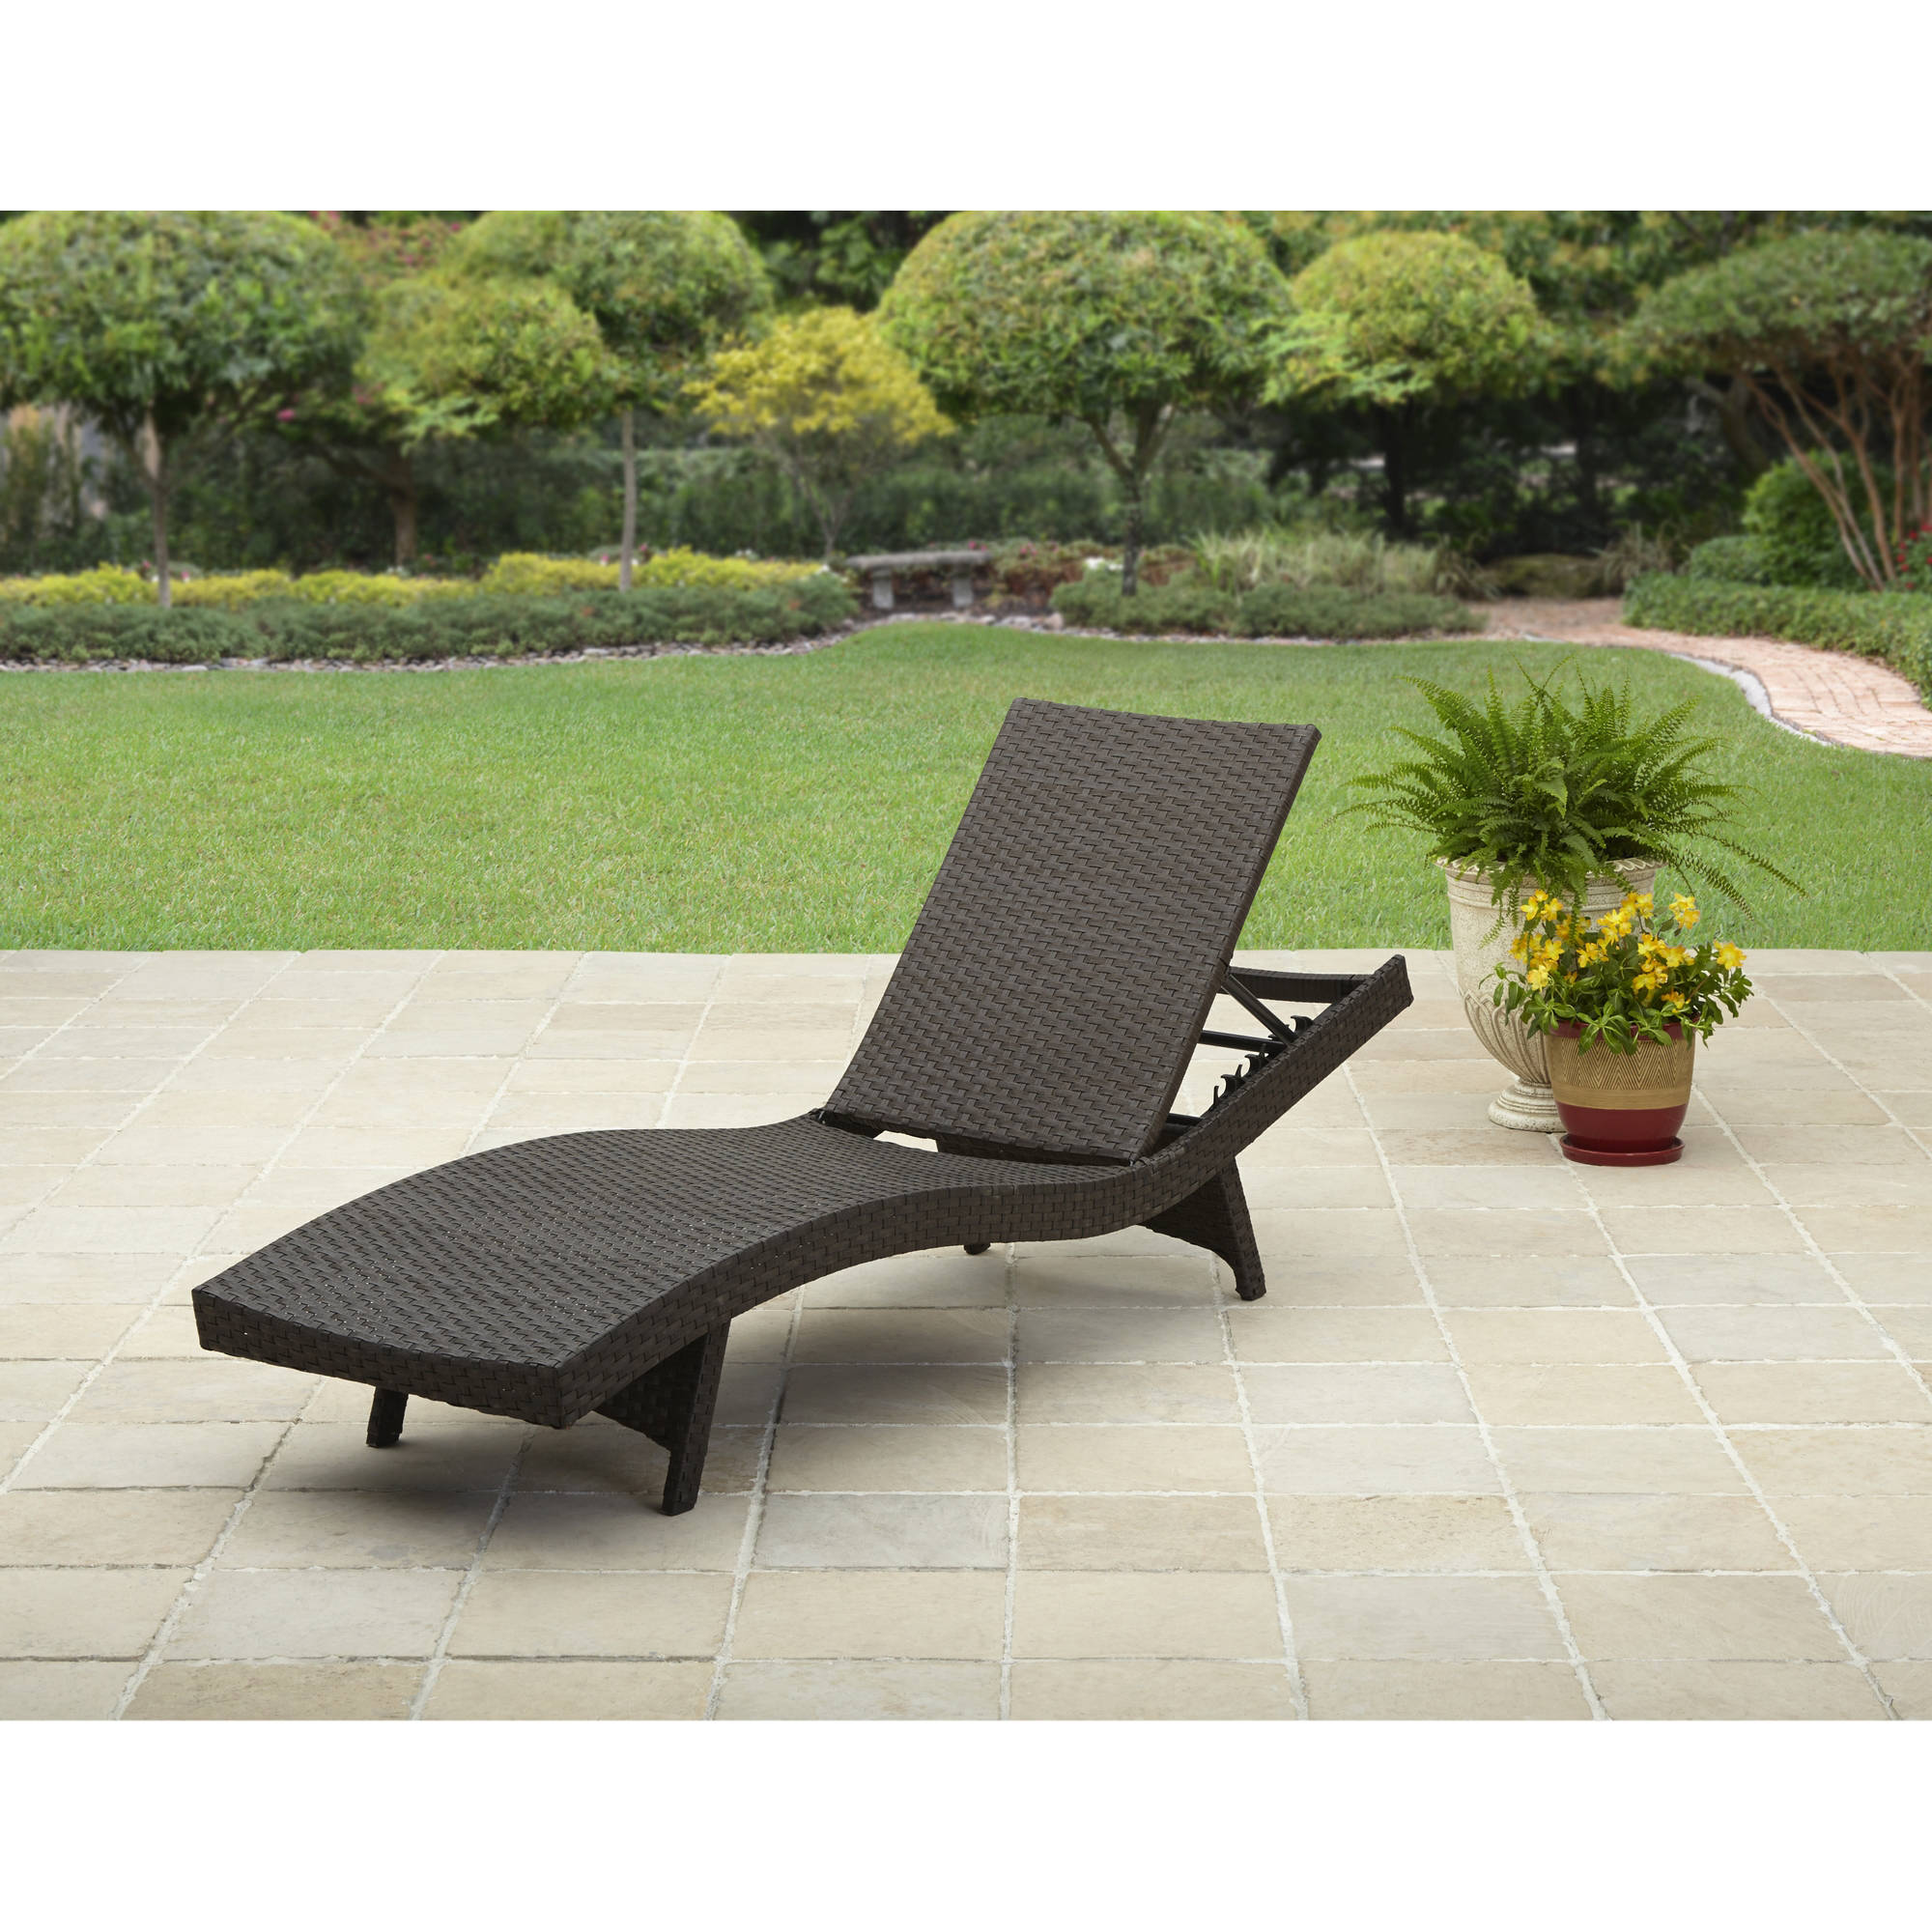 Better Homes and Gardens Avila Beach Chaise Walmartcom